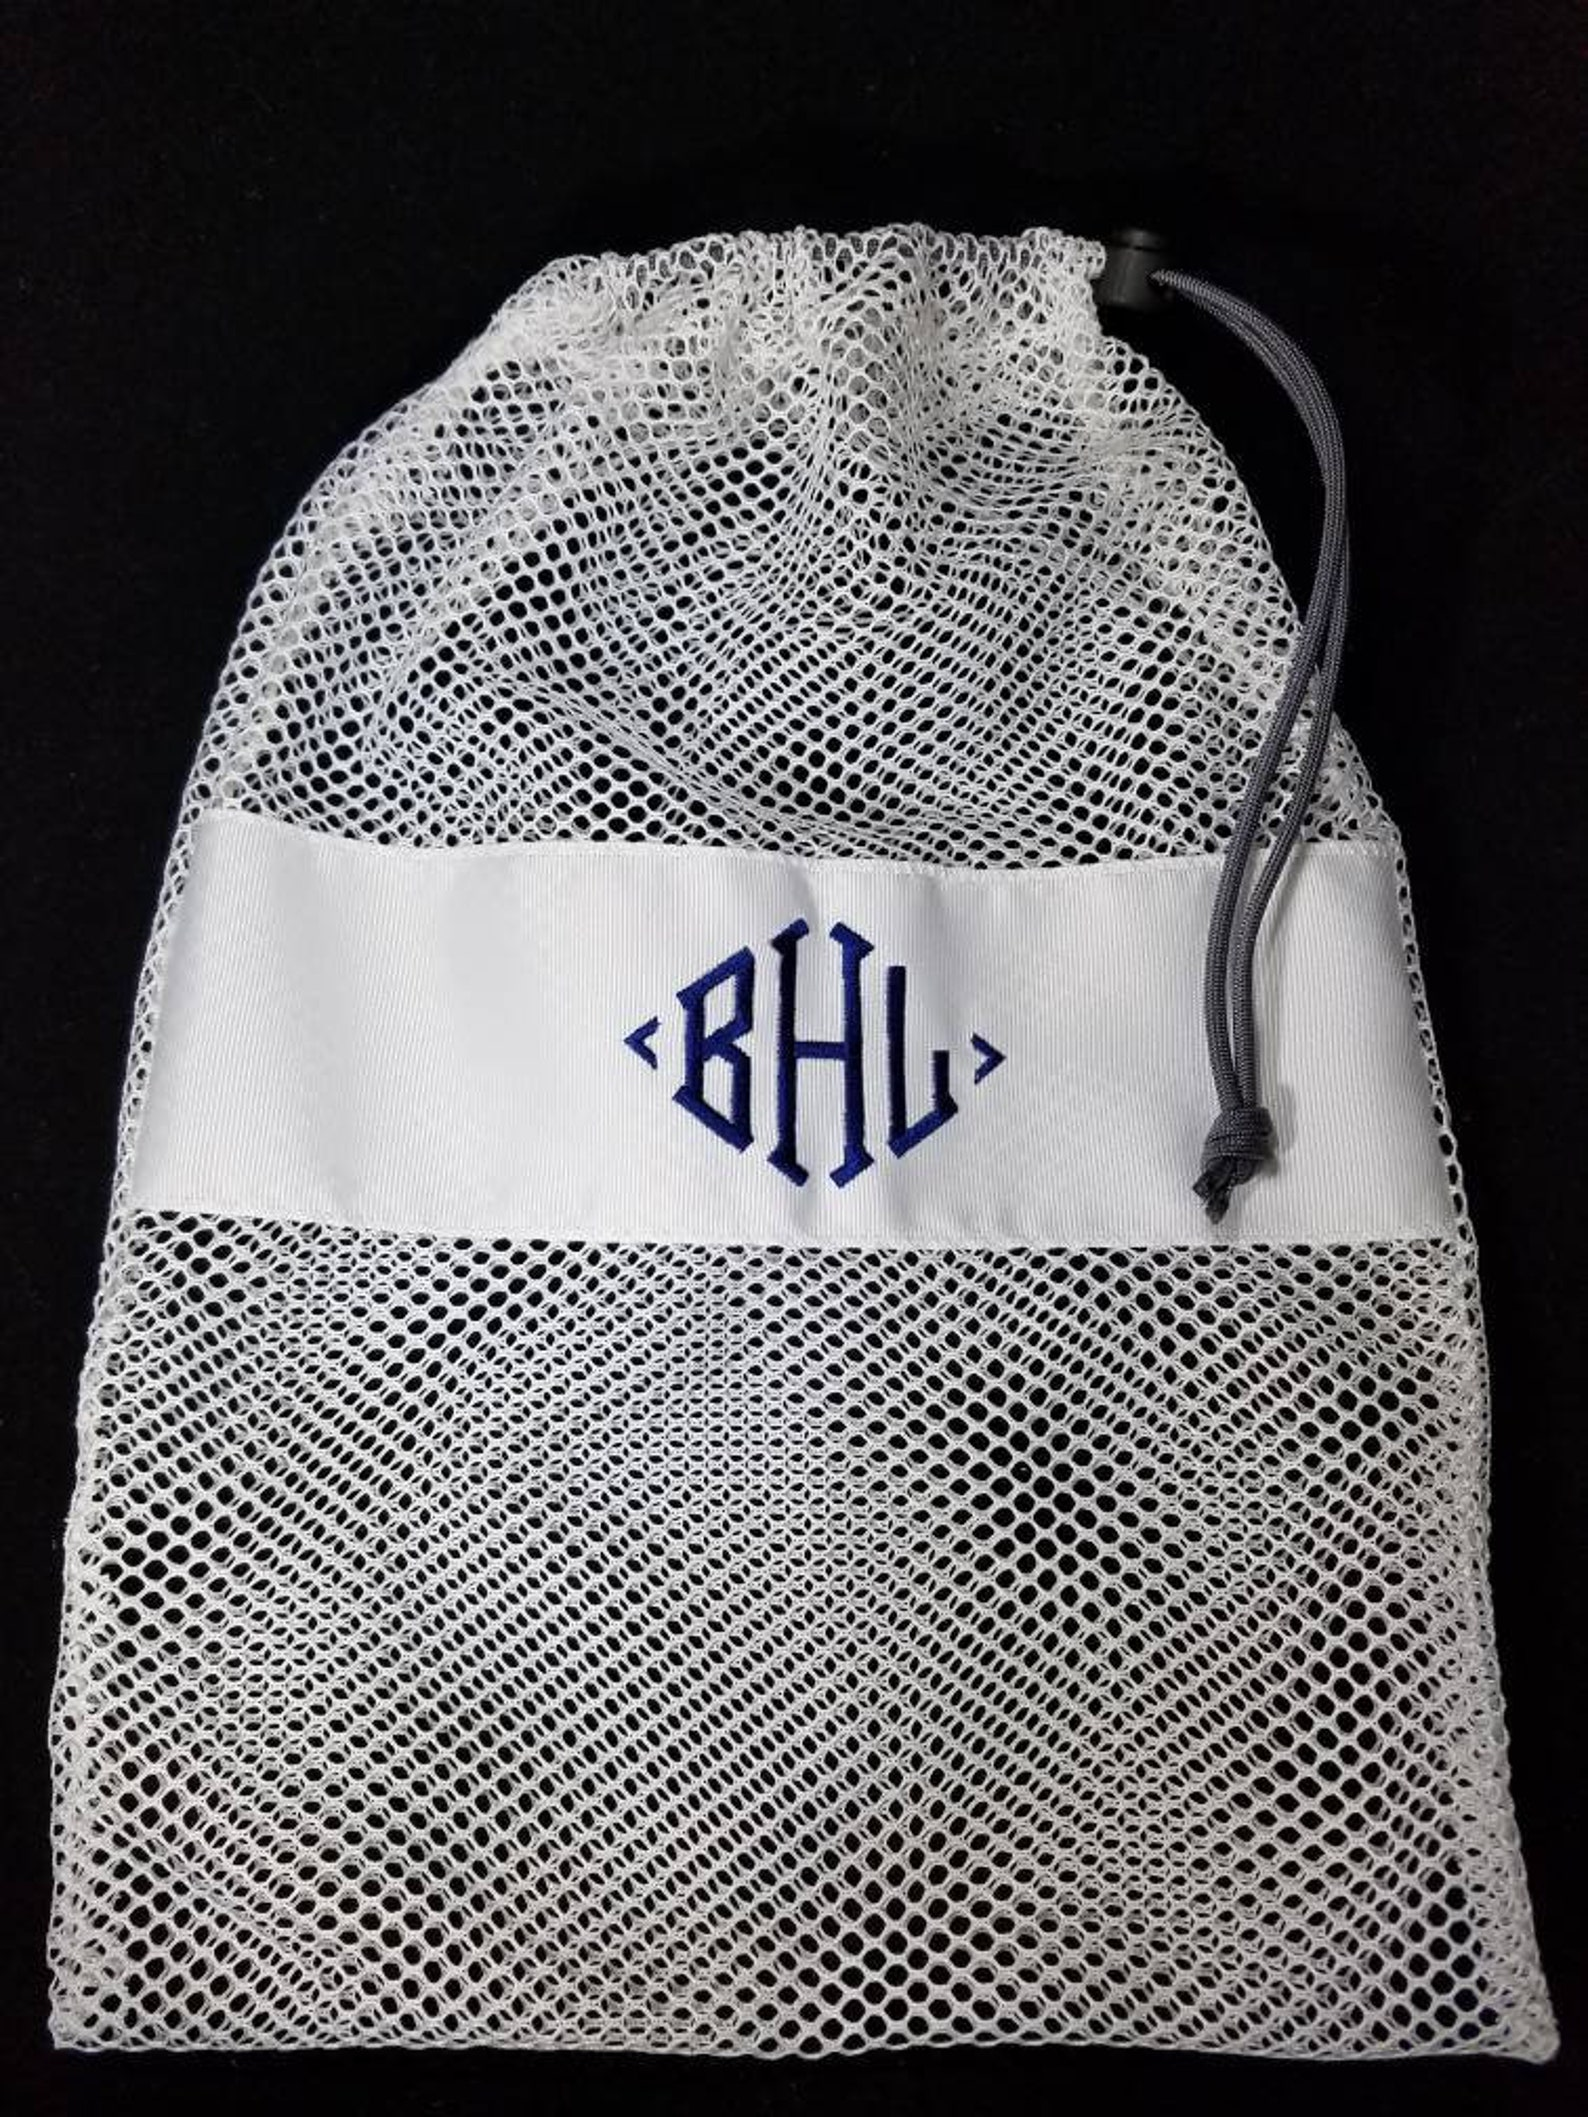 mesh drawstring white large ballet jazz tap pointe shoe glove ditty bag; free shipping within usa; dance team cheer softball gif